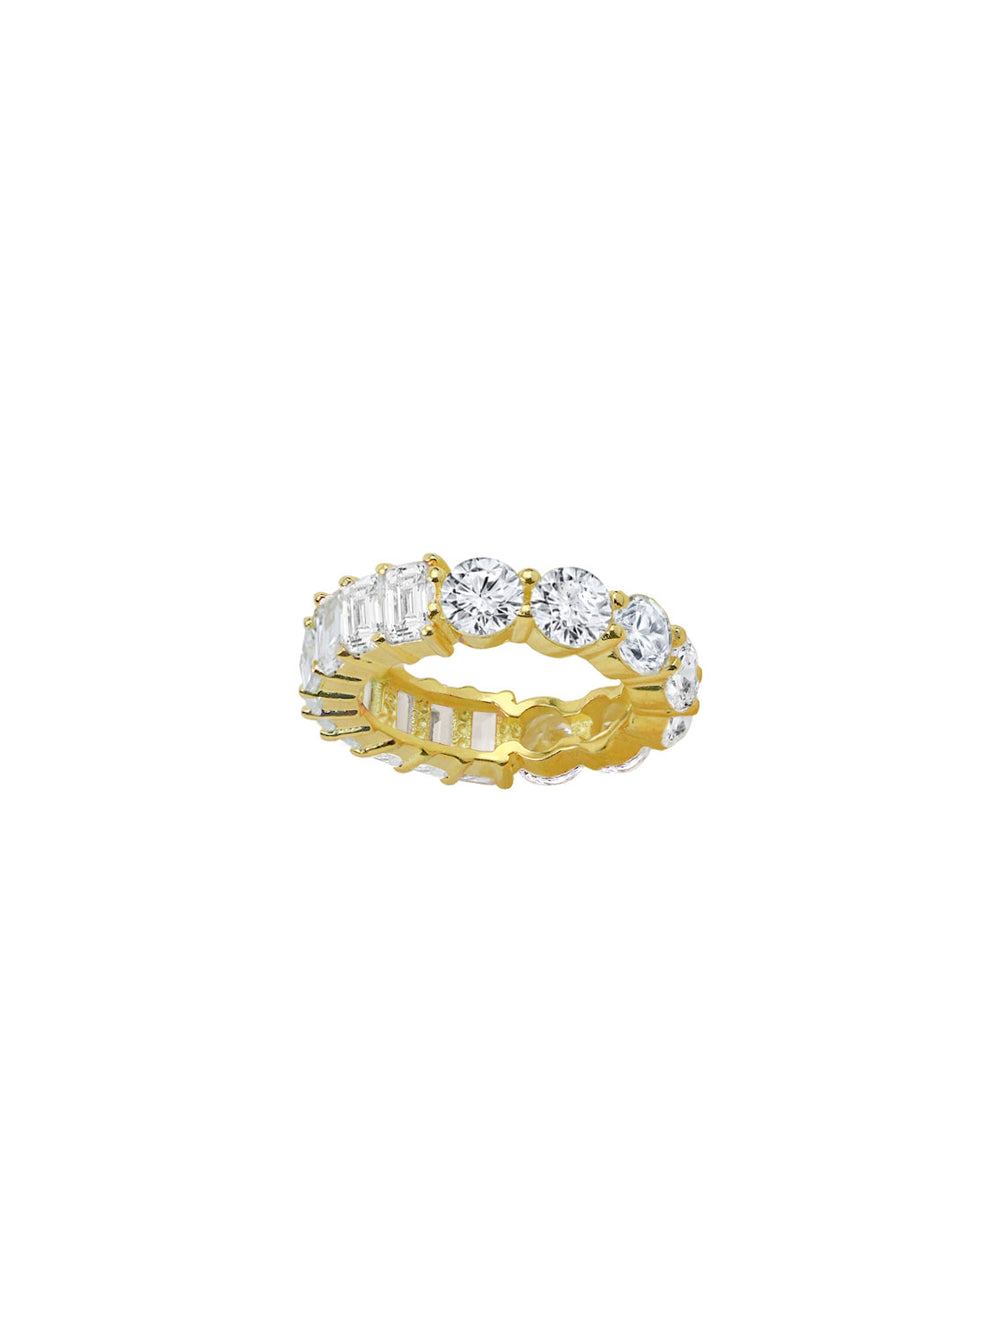 THE EMERALD CUT ROUND STONE ETERNITY BAND